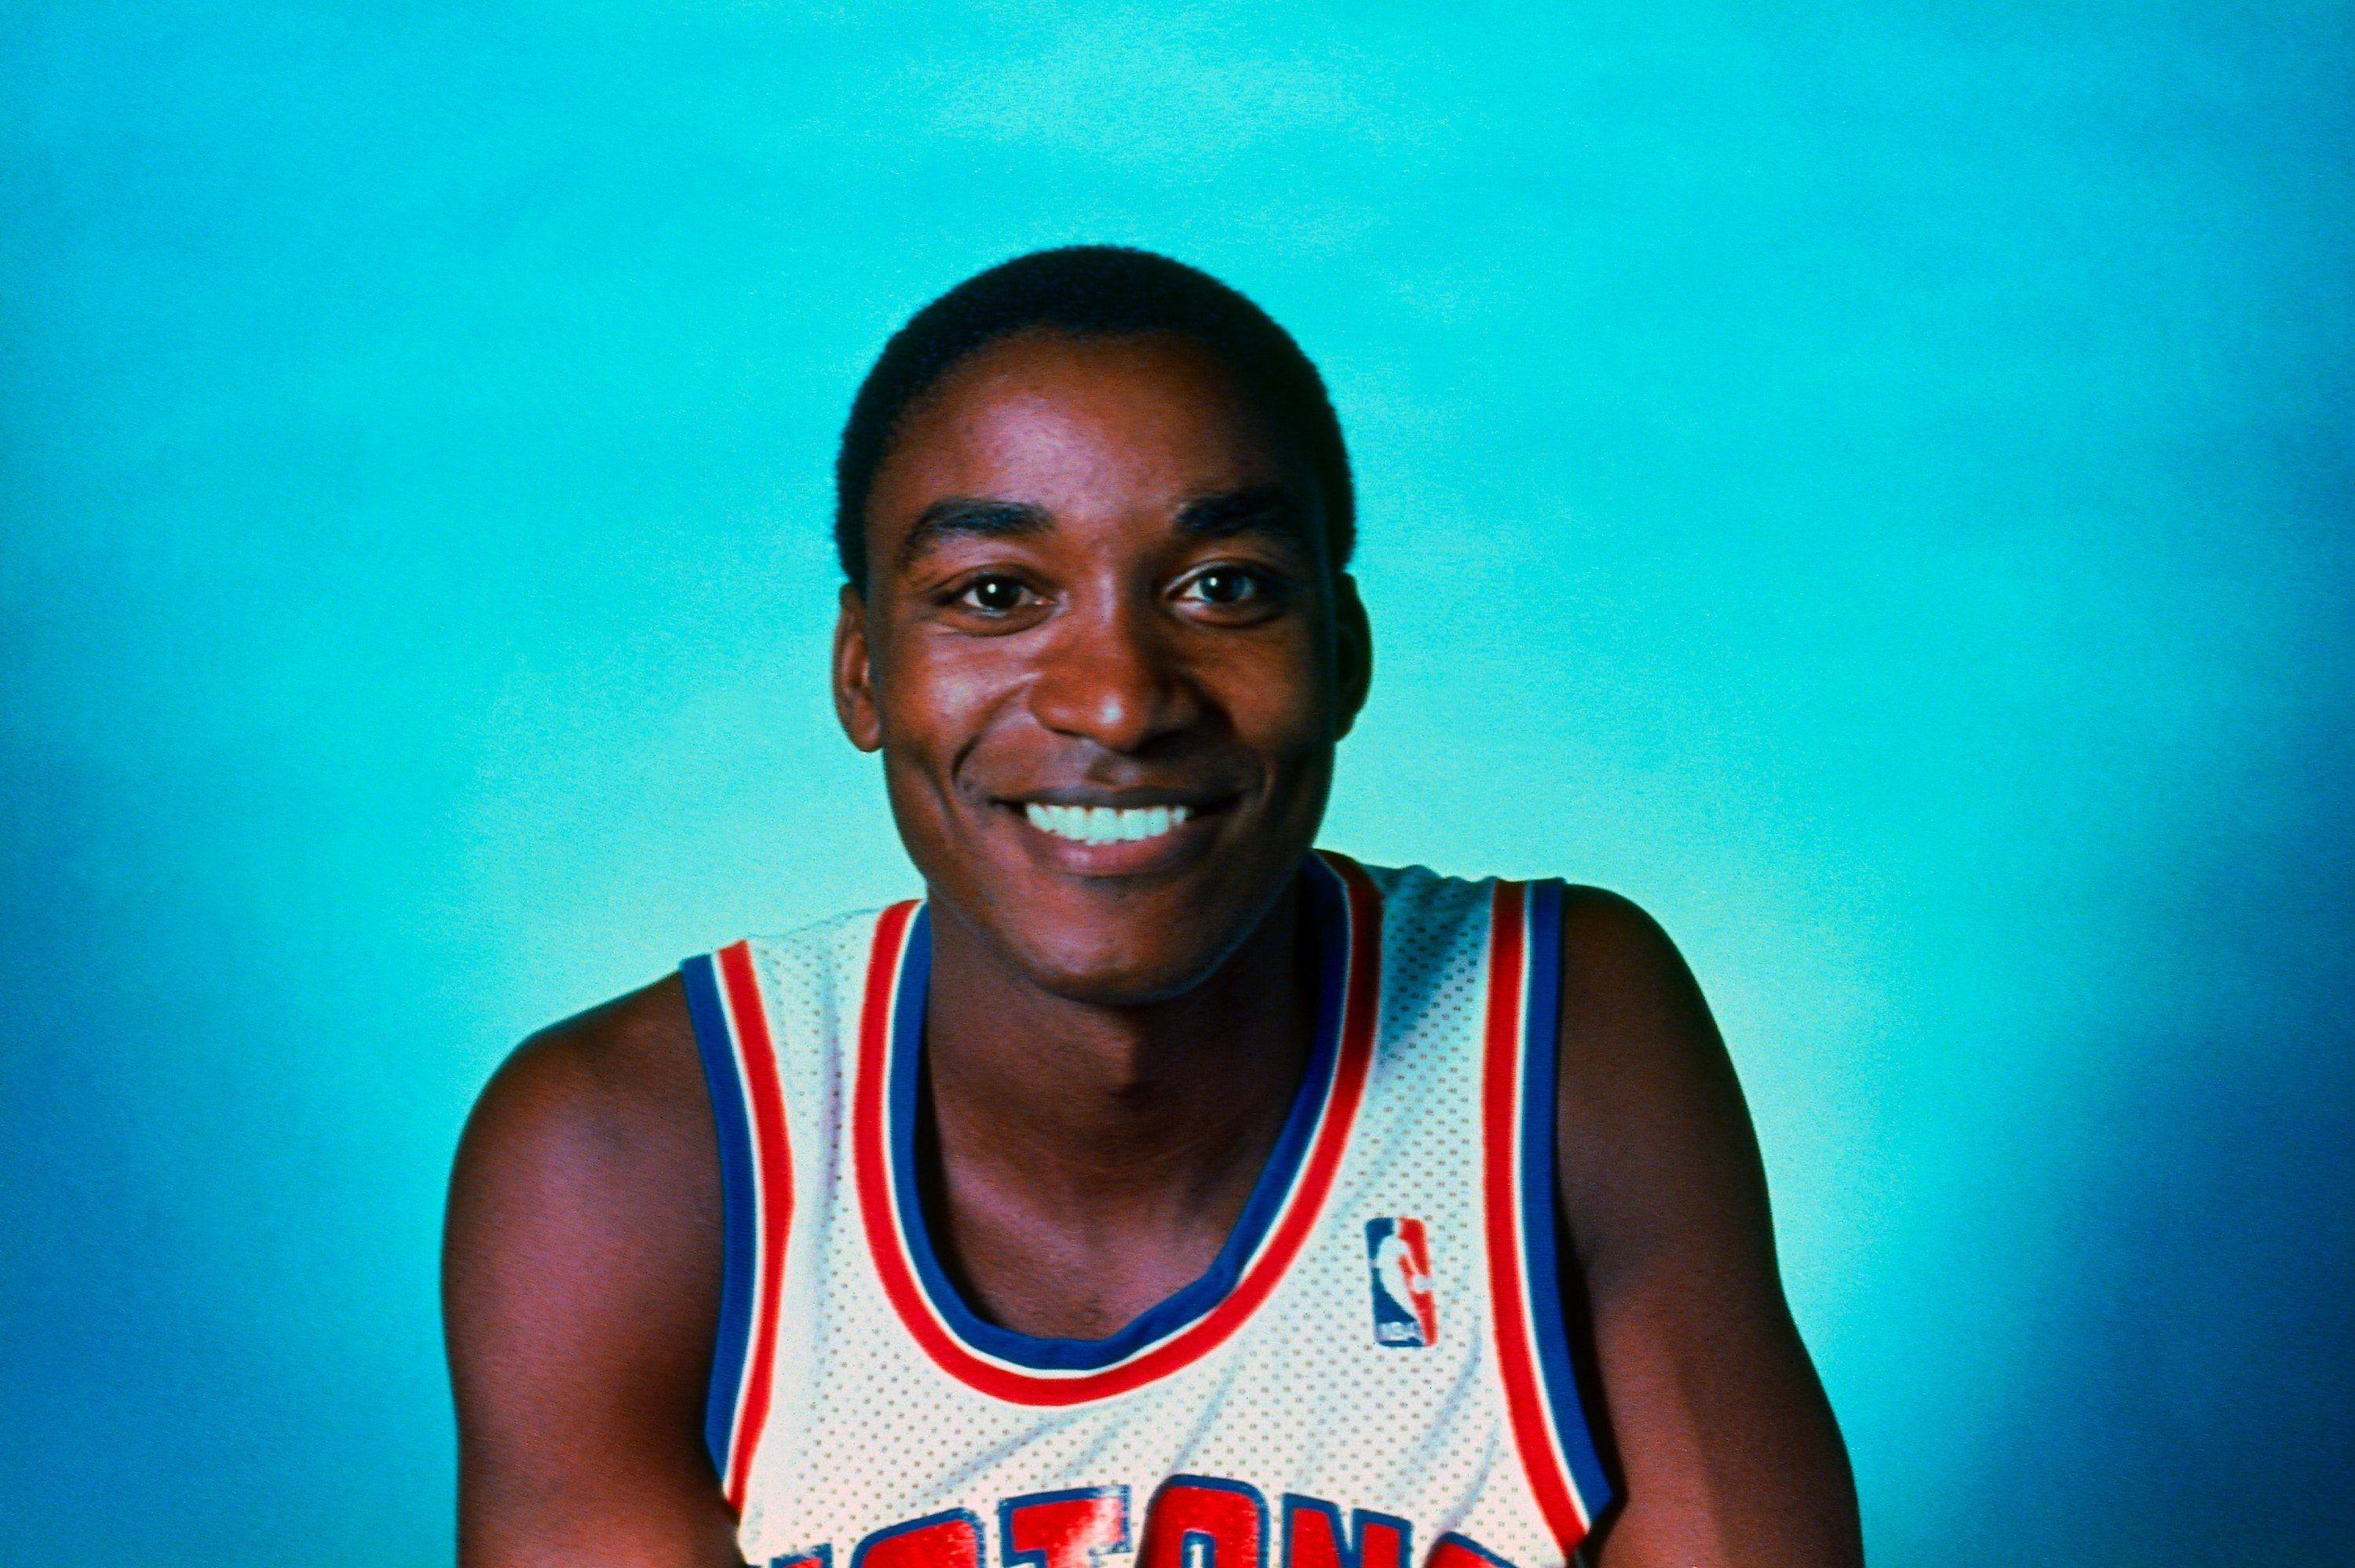 NBA legend Isiah Thomas in a 1987 portrait at the Pontiac Silverdome in Michigan. | Photo: Getty Images